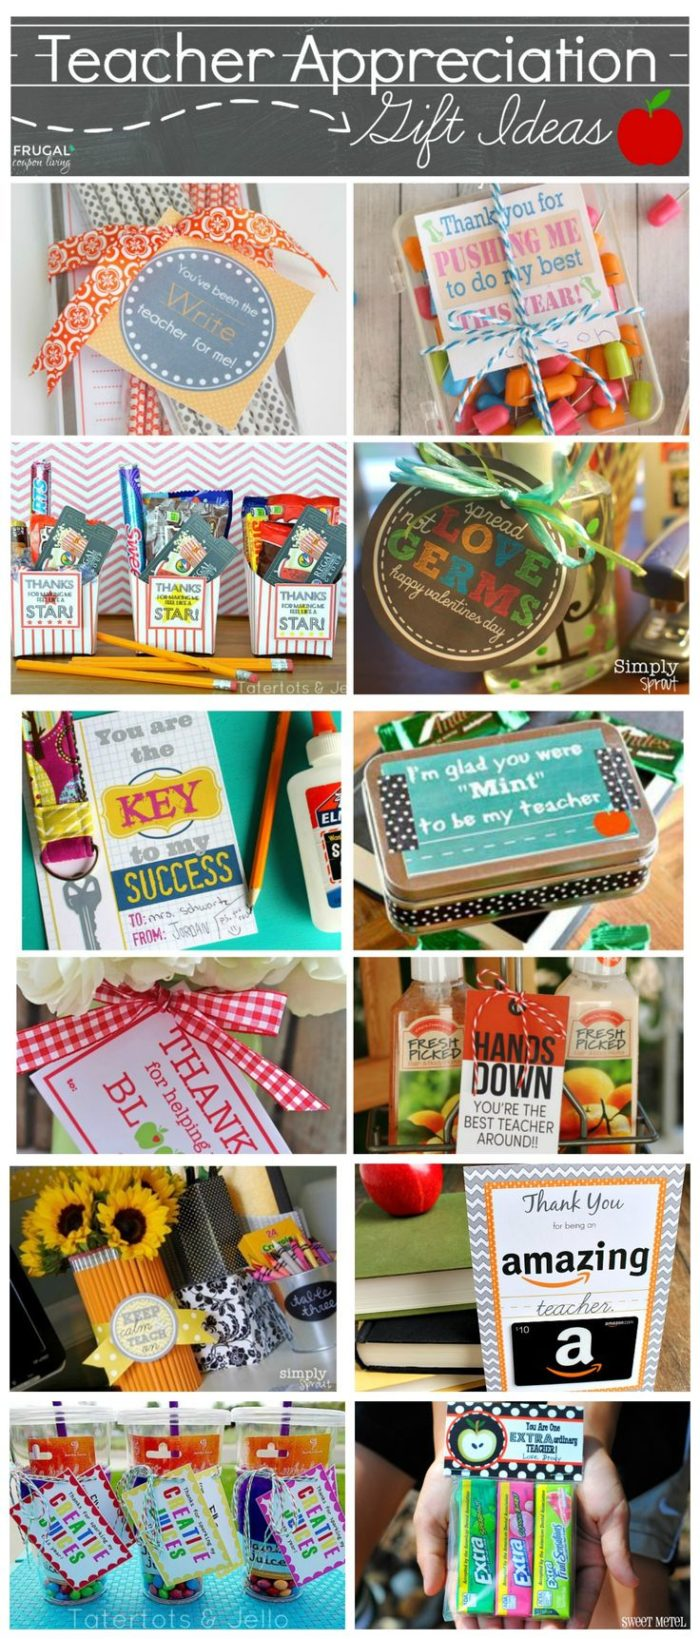 Teacher appreciation gift ideas with free printables. Ideas for each season of the school year. #TeacherAppreciationWeek #FreePrintables #FrugalCouponLiving #printables #teacherprintables #teachergiftideas #teachergiftguide #freeteacherprintables #printablesforteachers #giftguide